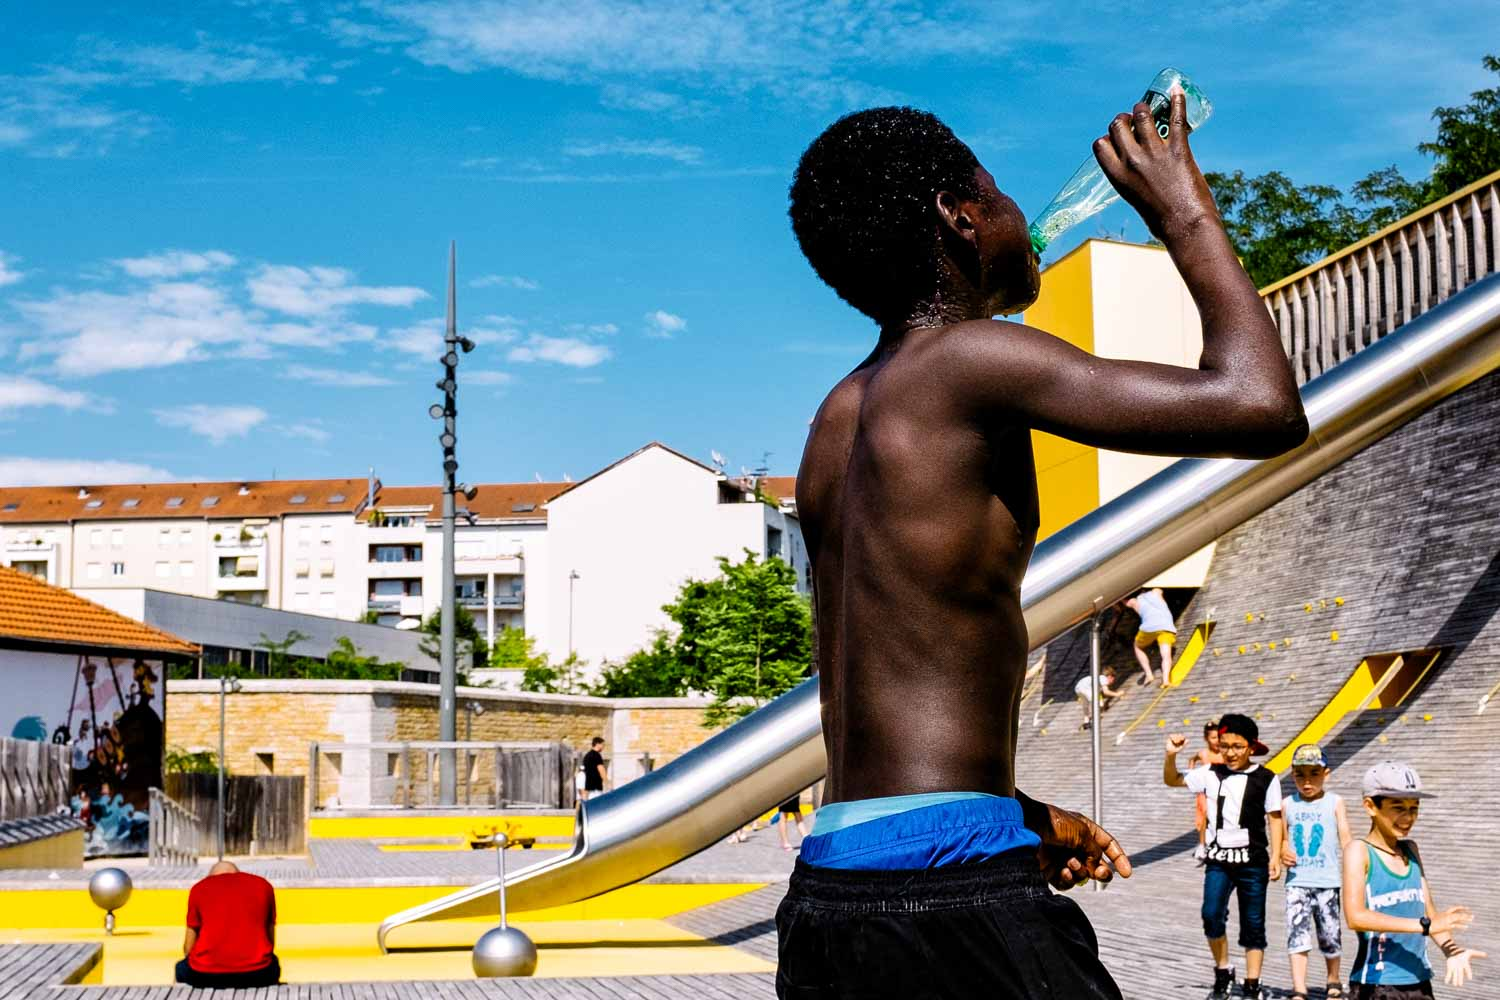 Fabrice Cilpa street photo street photography life is street photographie de rue